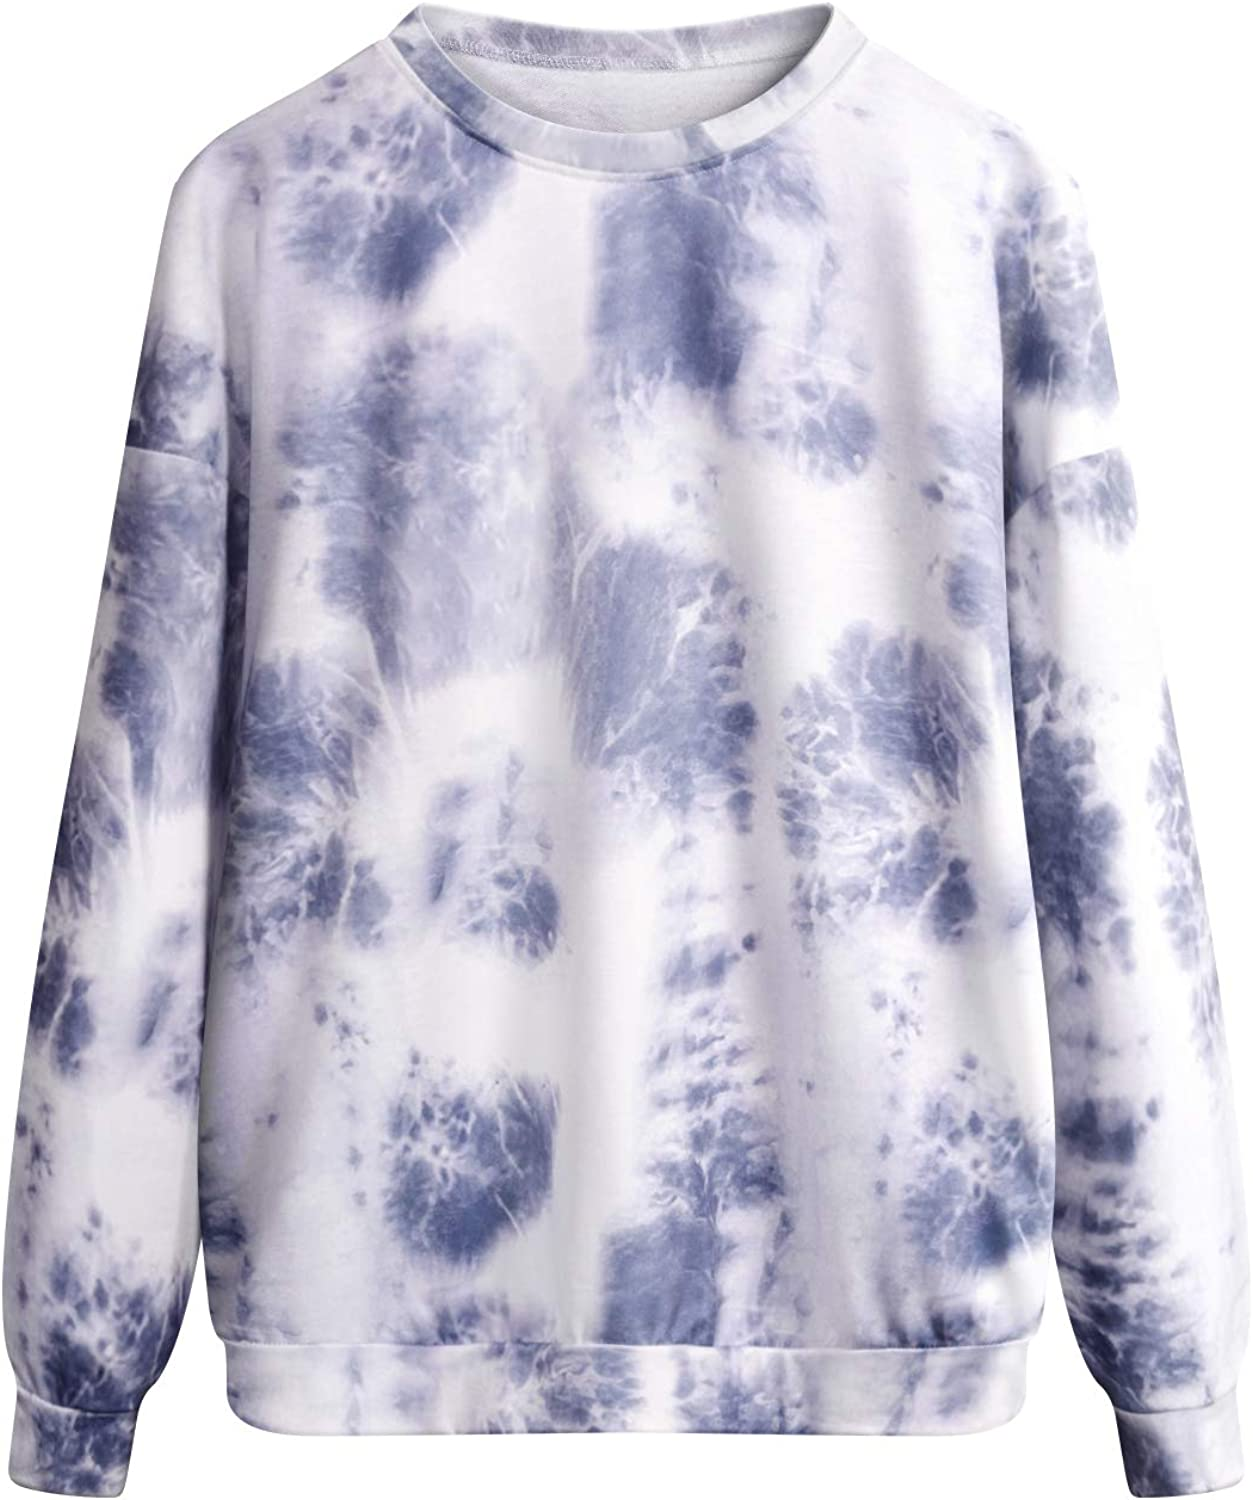 Koscacy Women's Tie Dye Sweatshirts Oversized Long Sleeve Crewneck Shirts Casual Pullover Tops with Pockets